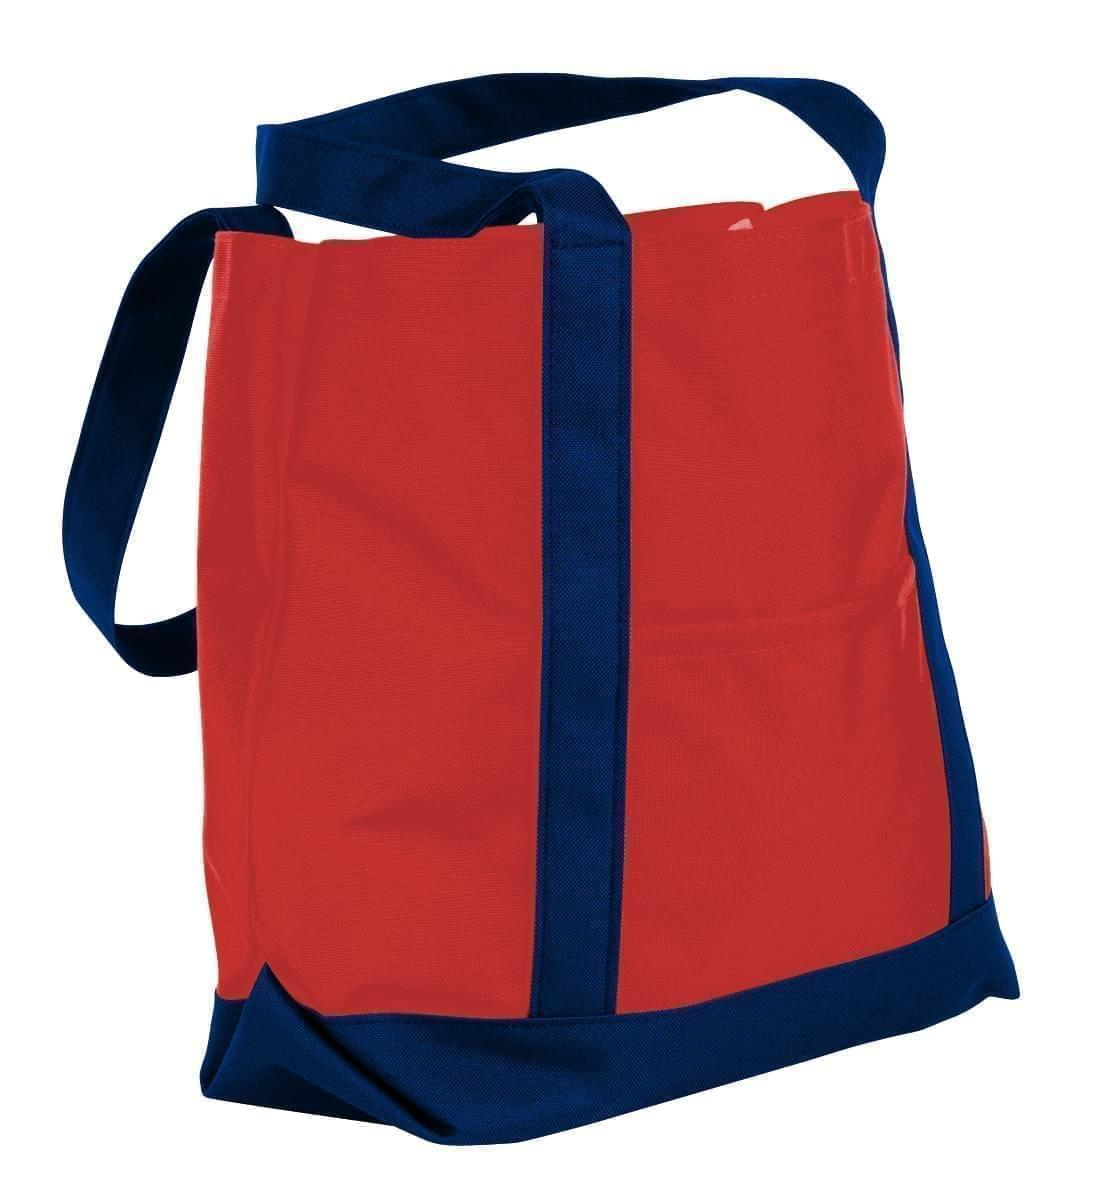 USA Made Canvas Fashion Tote Bags, Red-Navy, XAACL1UAEI